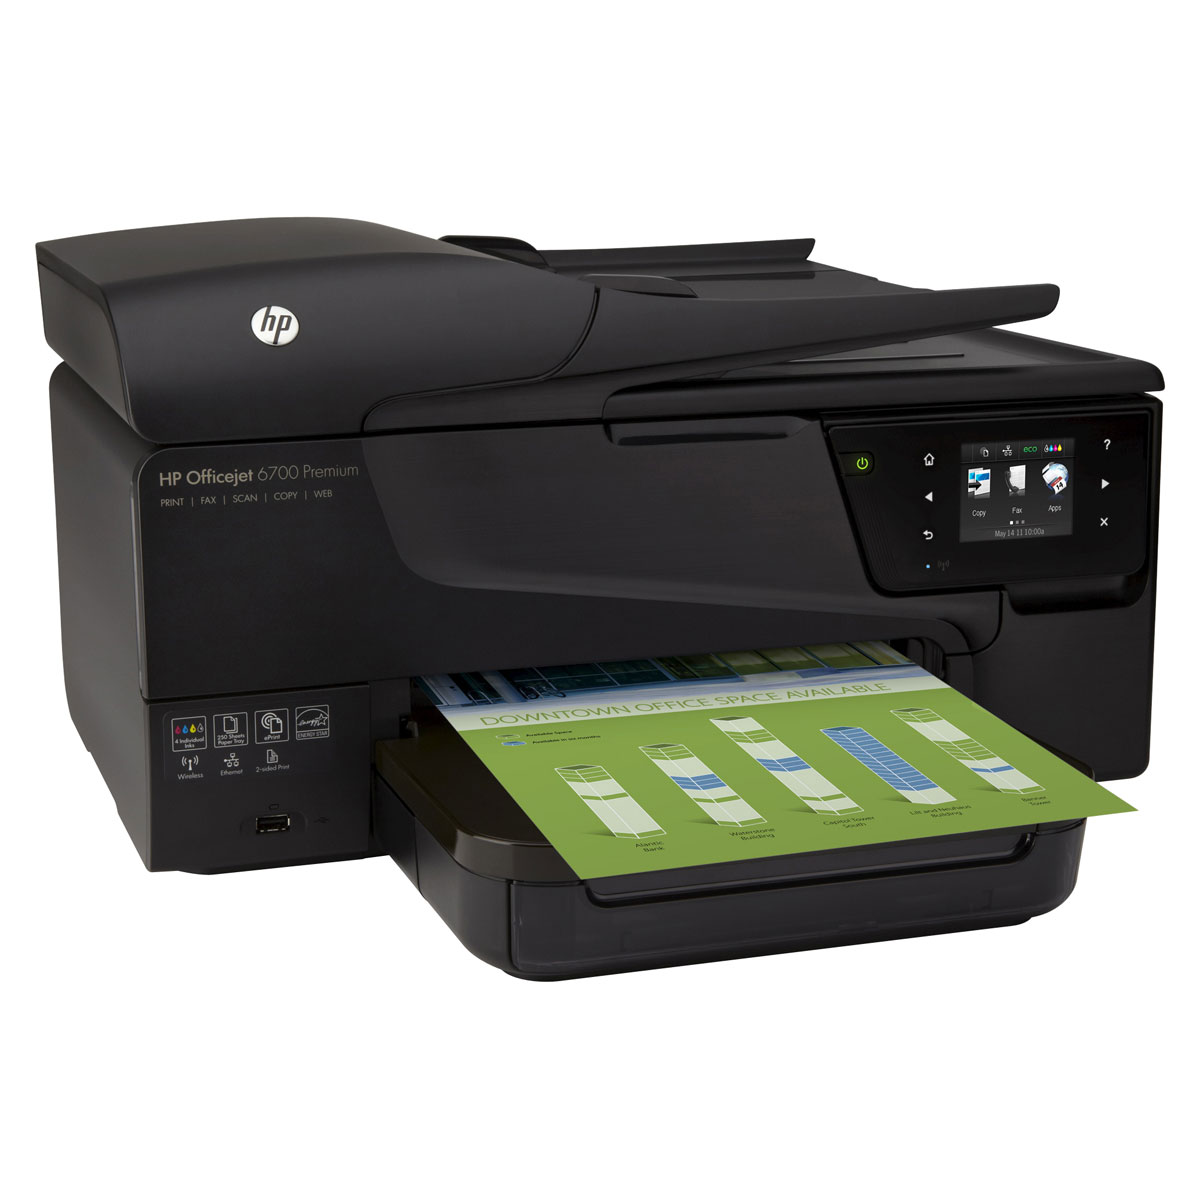 Hp Officejet 6700 Premium Imprimante Multifonction Hp